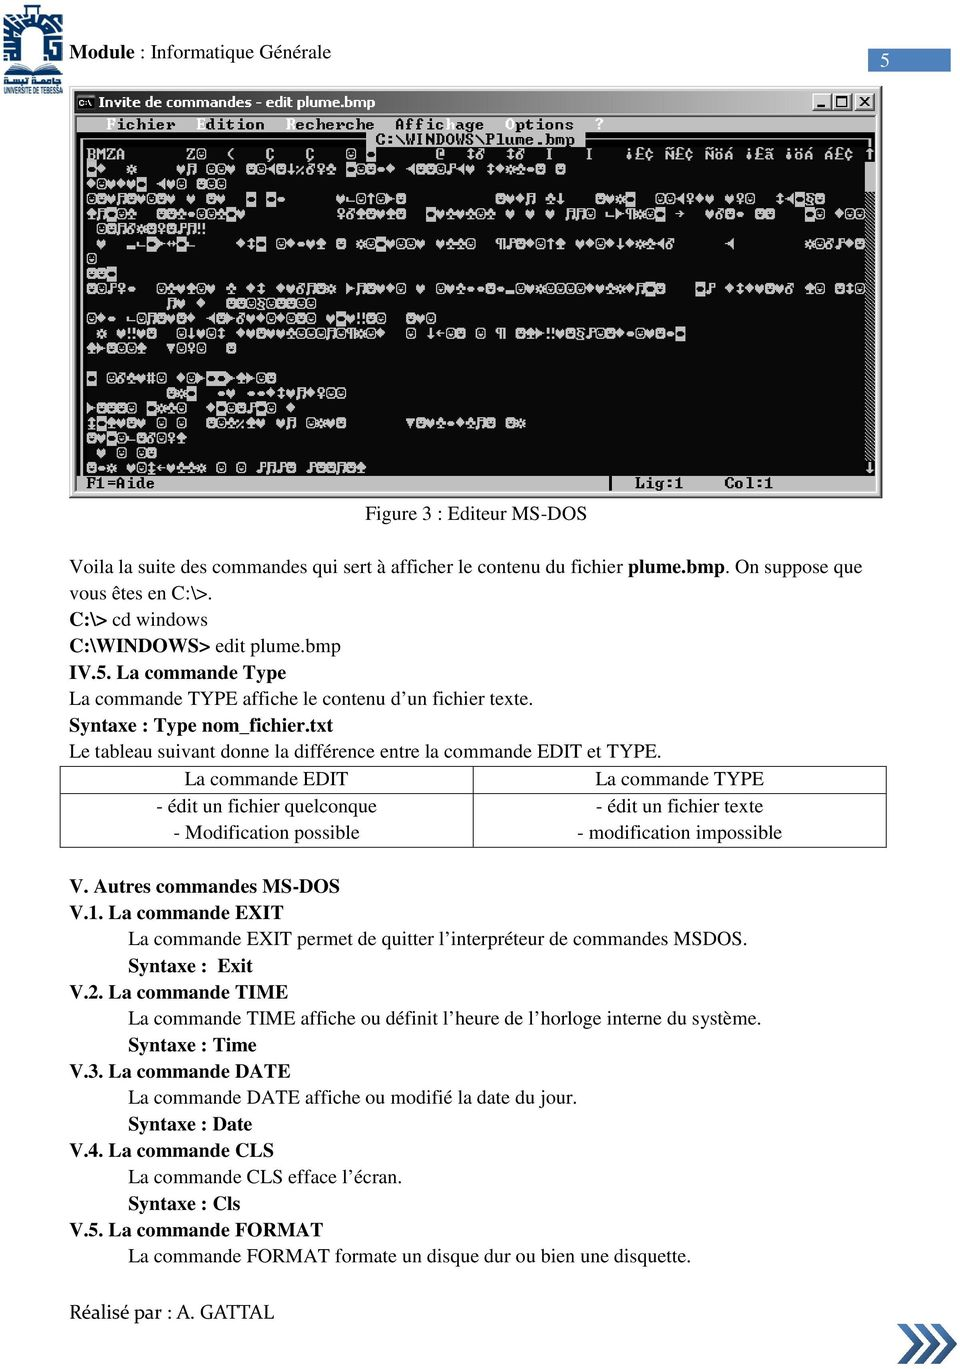 La commande EDIT La commande TYPE - édit un fichier quelconque - édit un fichier texte - Modification possible - modification impossible V. Autres commandes MS-DOS V.1.